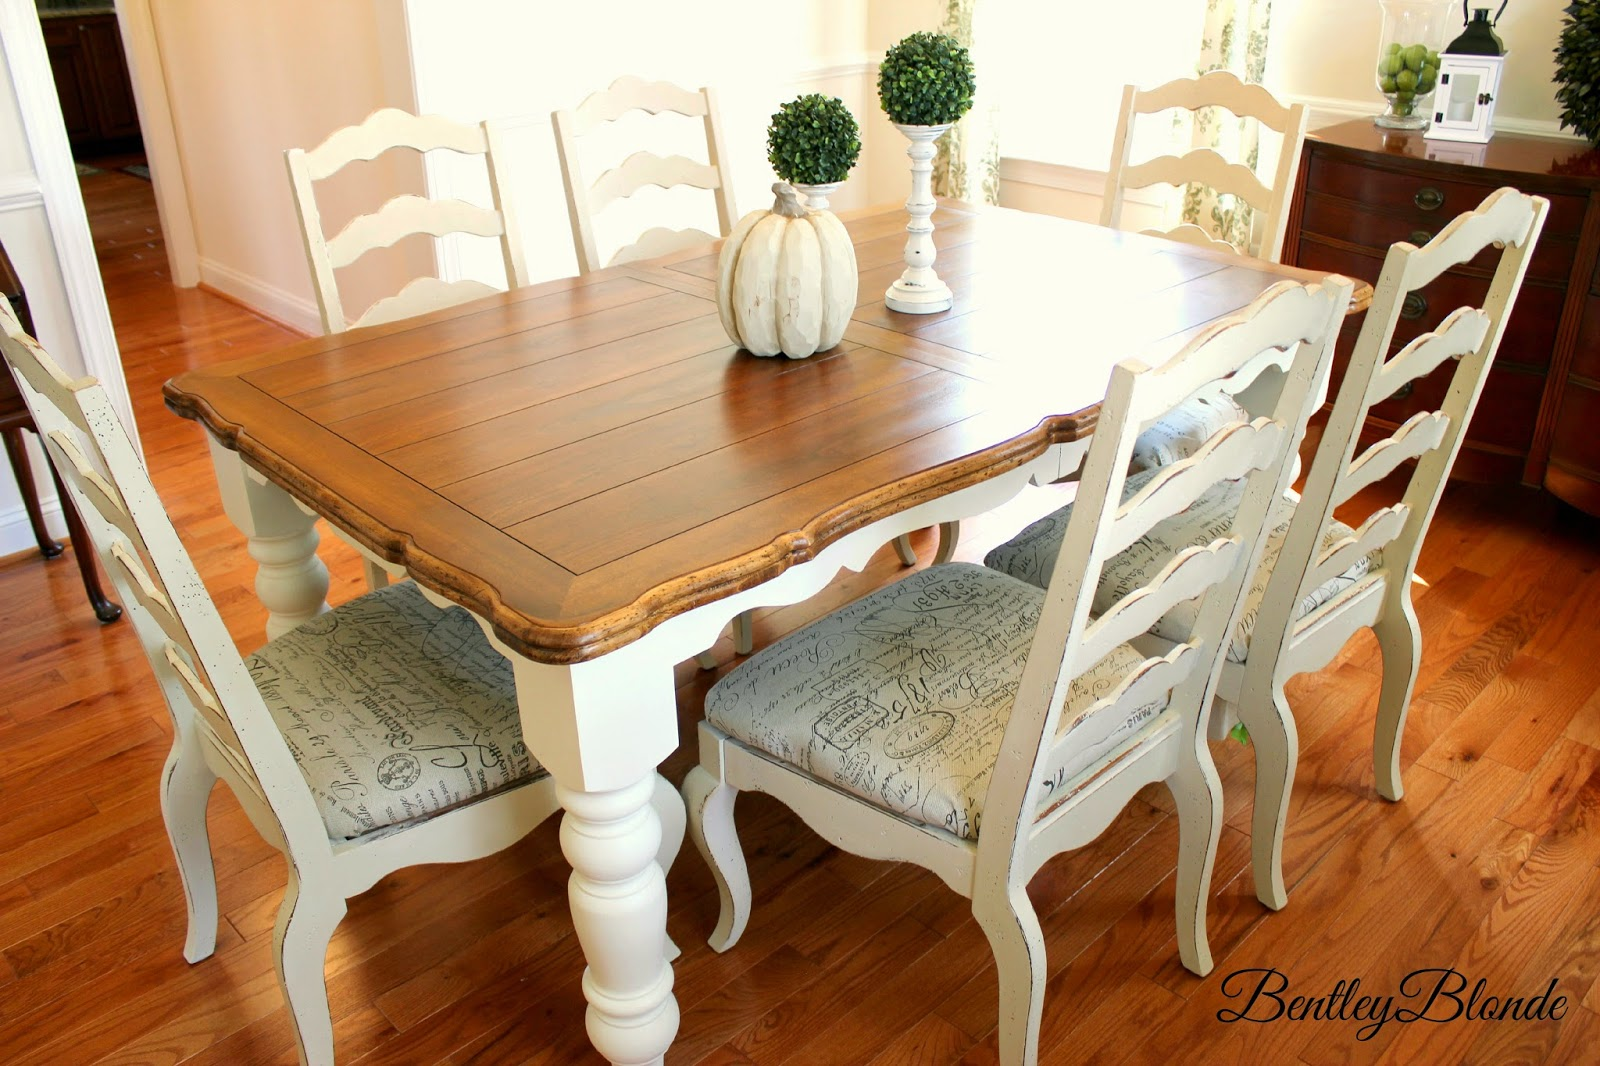 Bentleyblonde Diy Farmhouse Table Dining Set Makeover With Annie